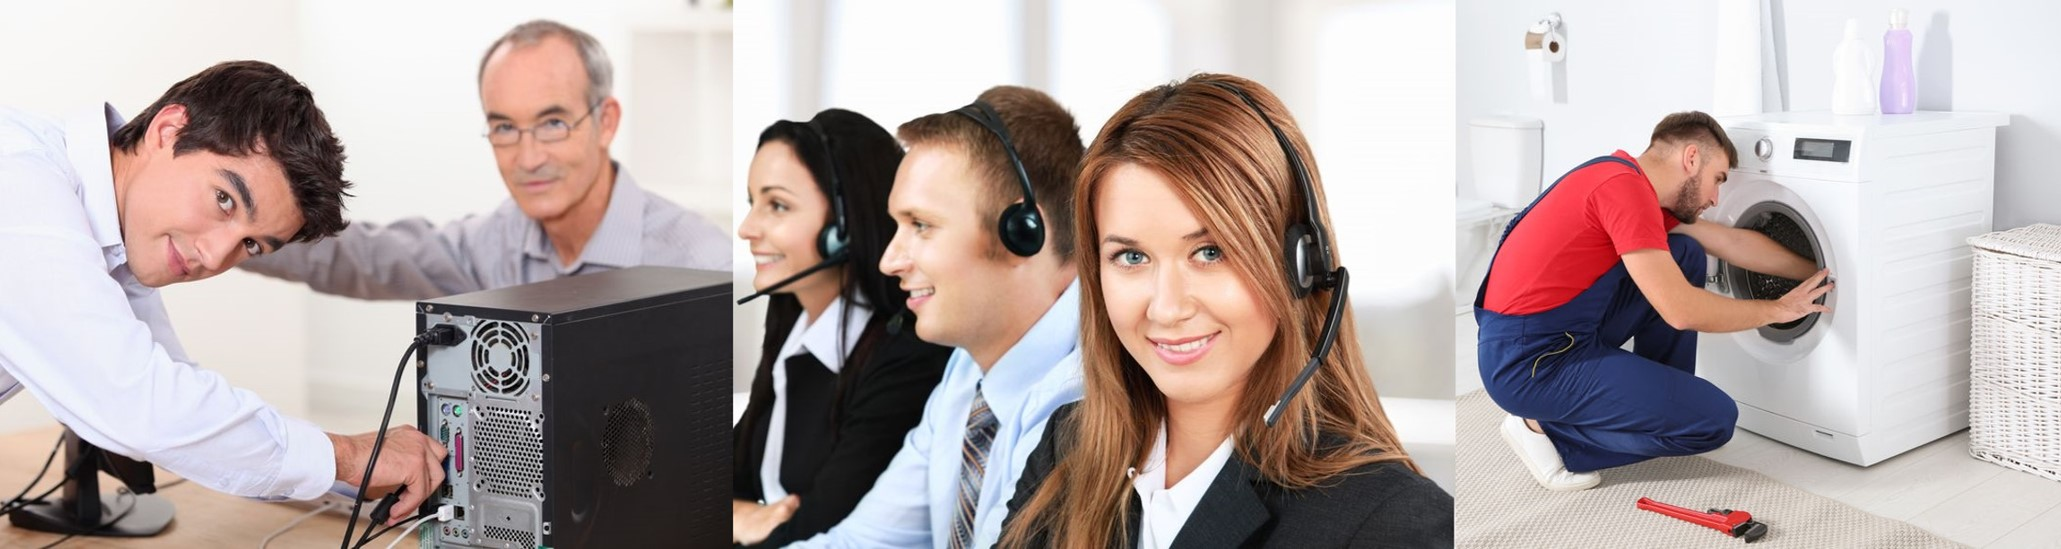 Outsourcing callcenter en service afdeling